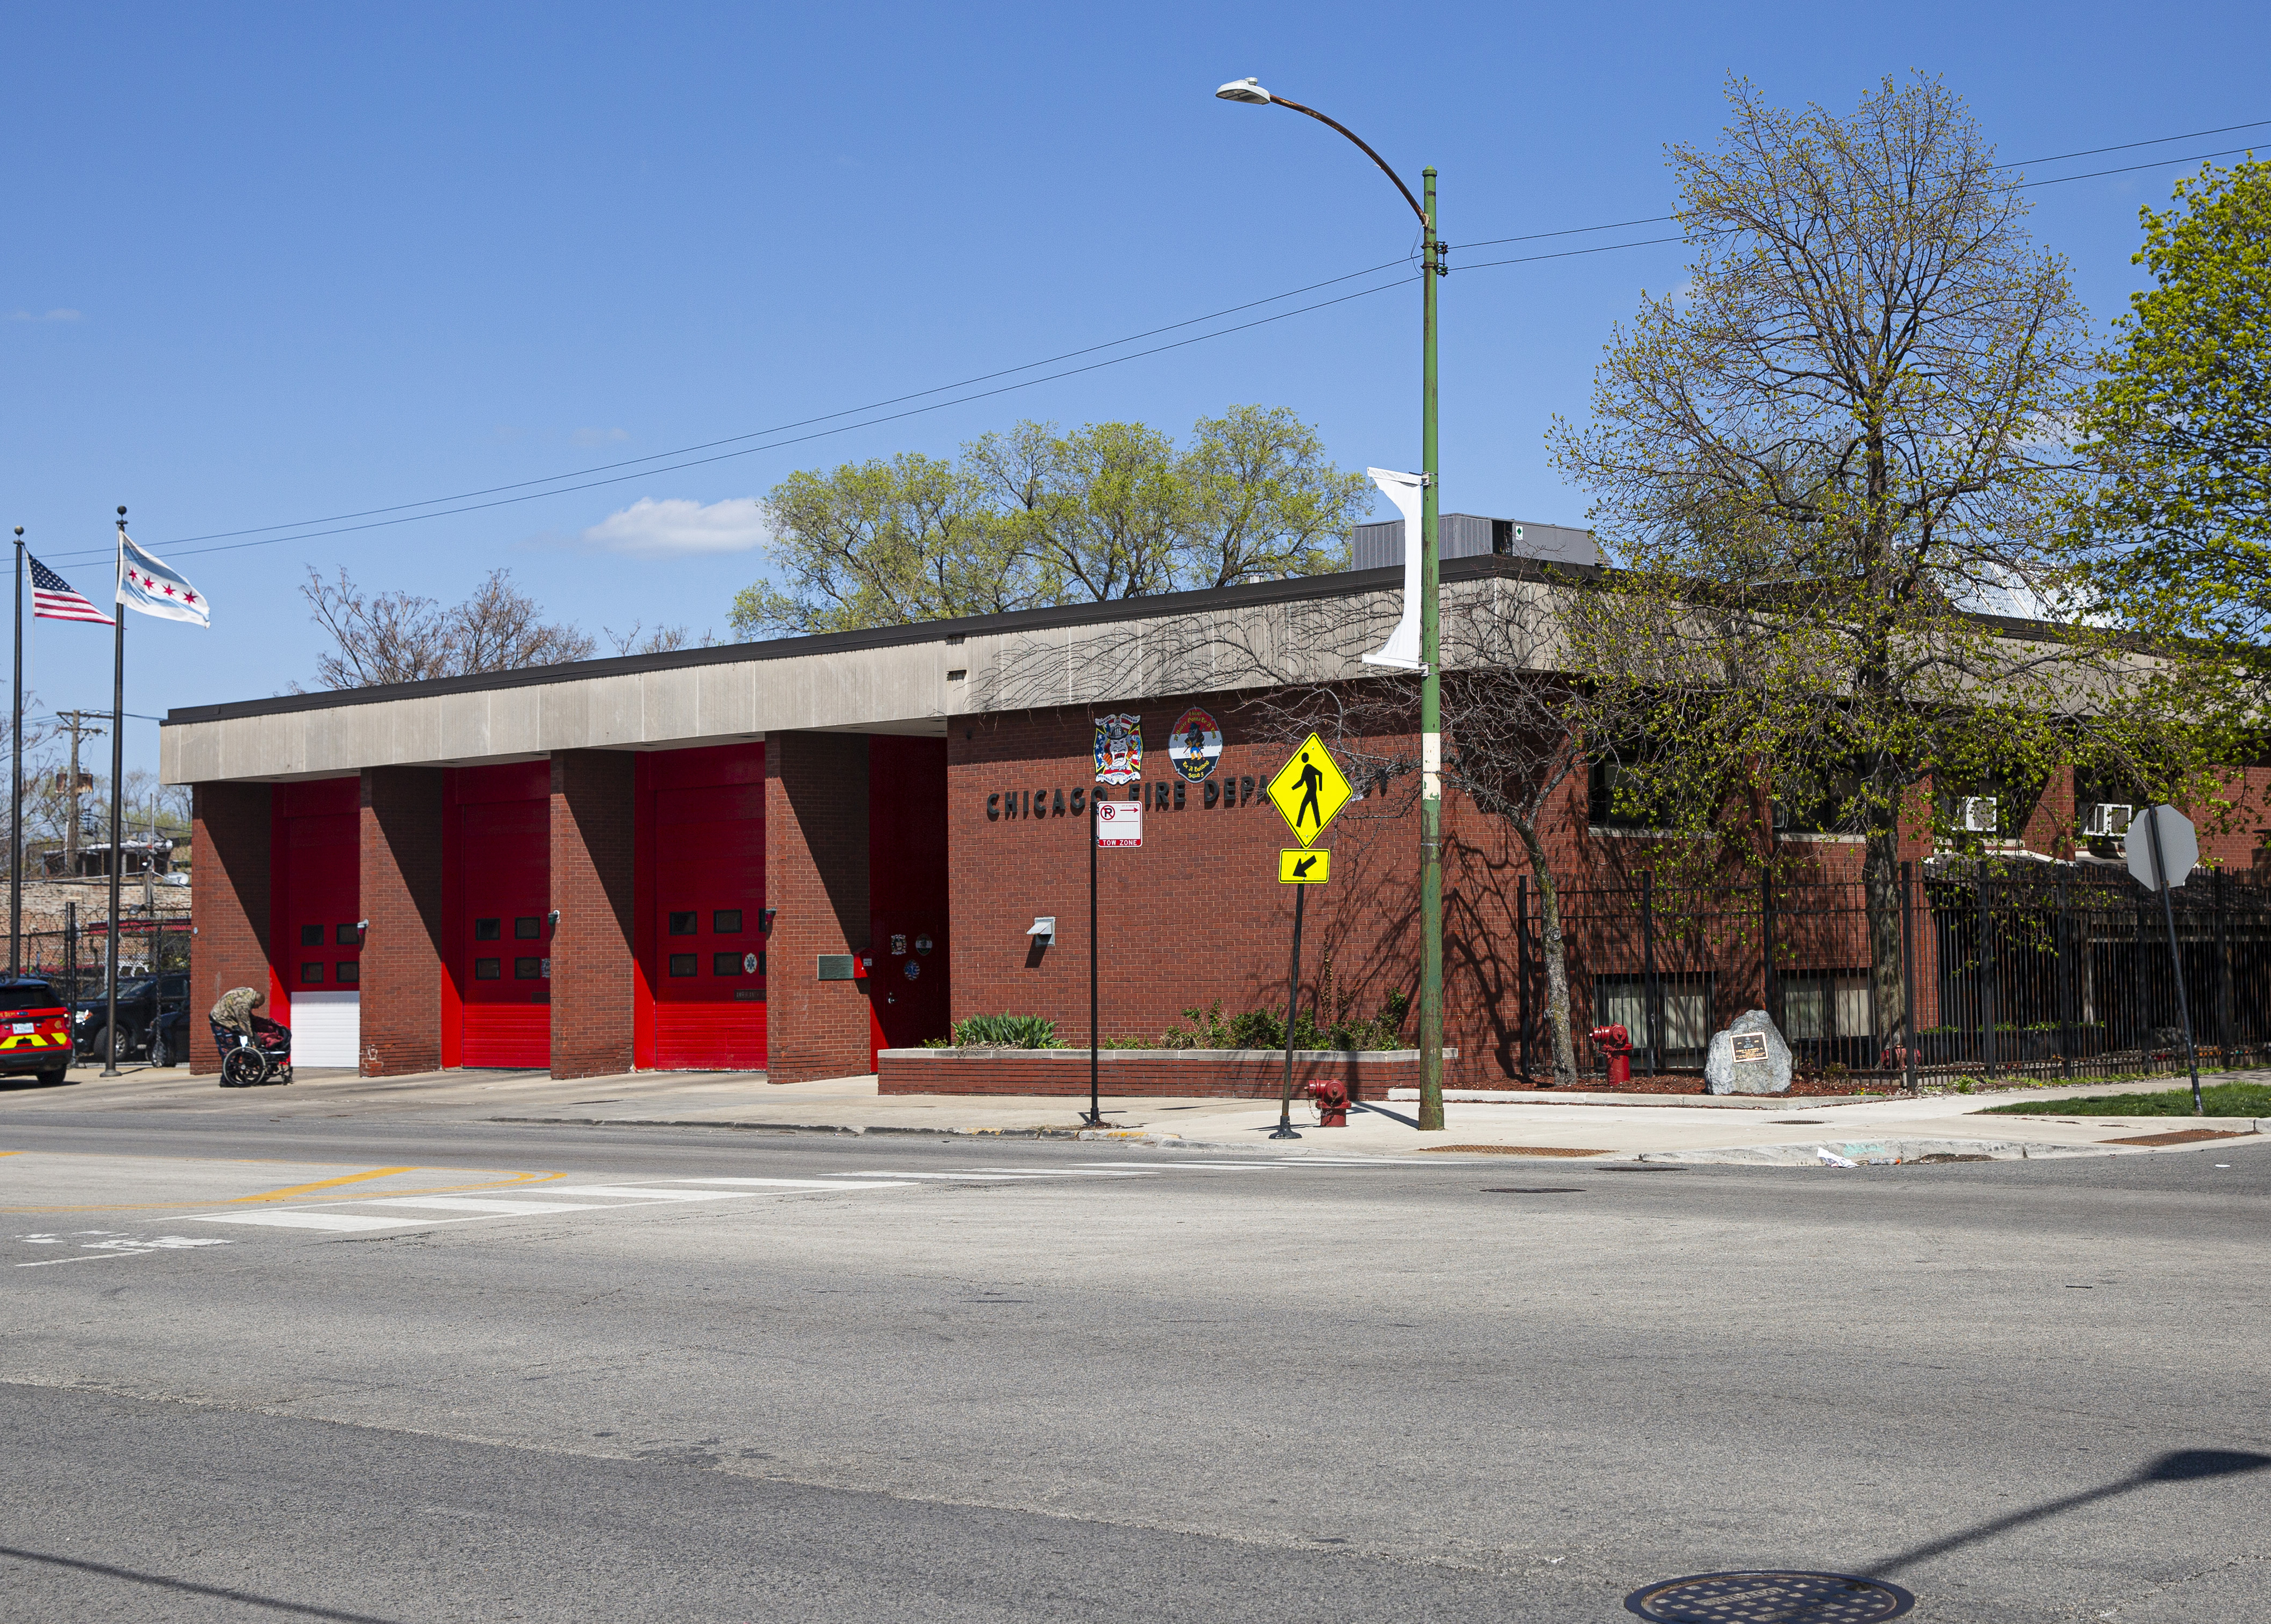 The Chicago Fire Department Engine Company 116 at 5955 S. Ashland Ave in Englewood.